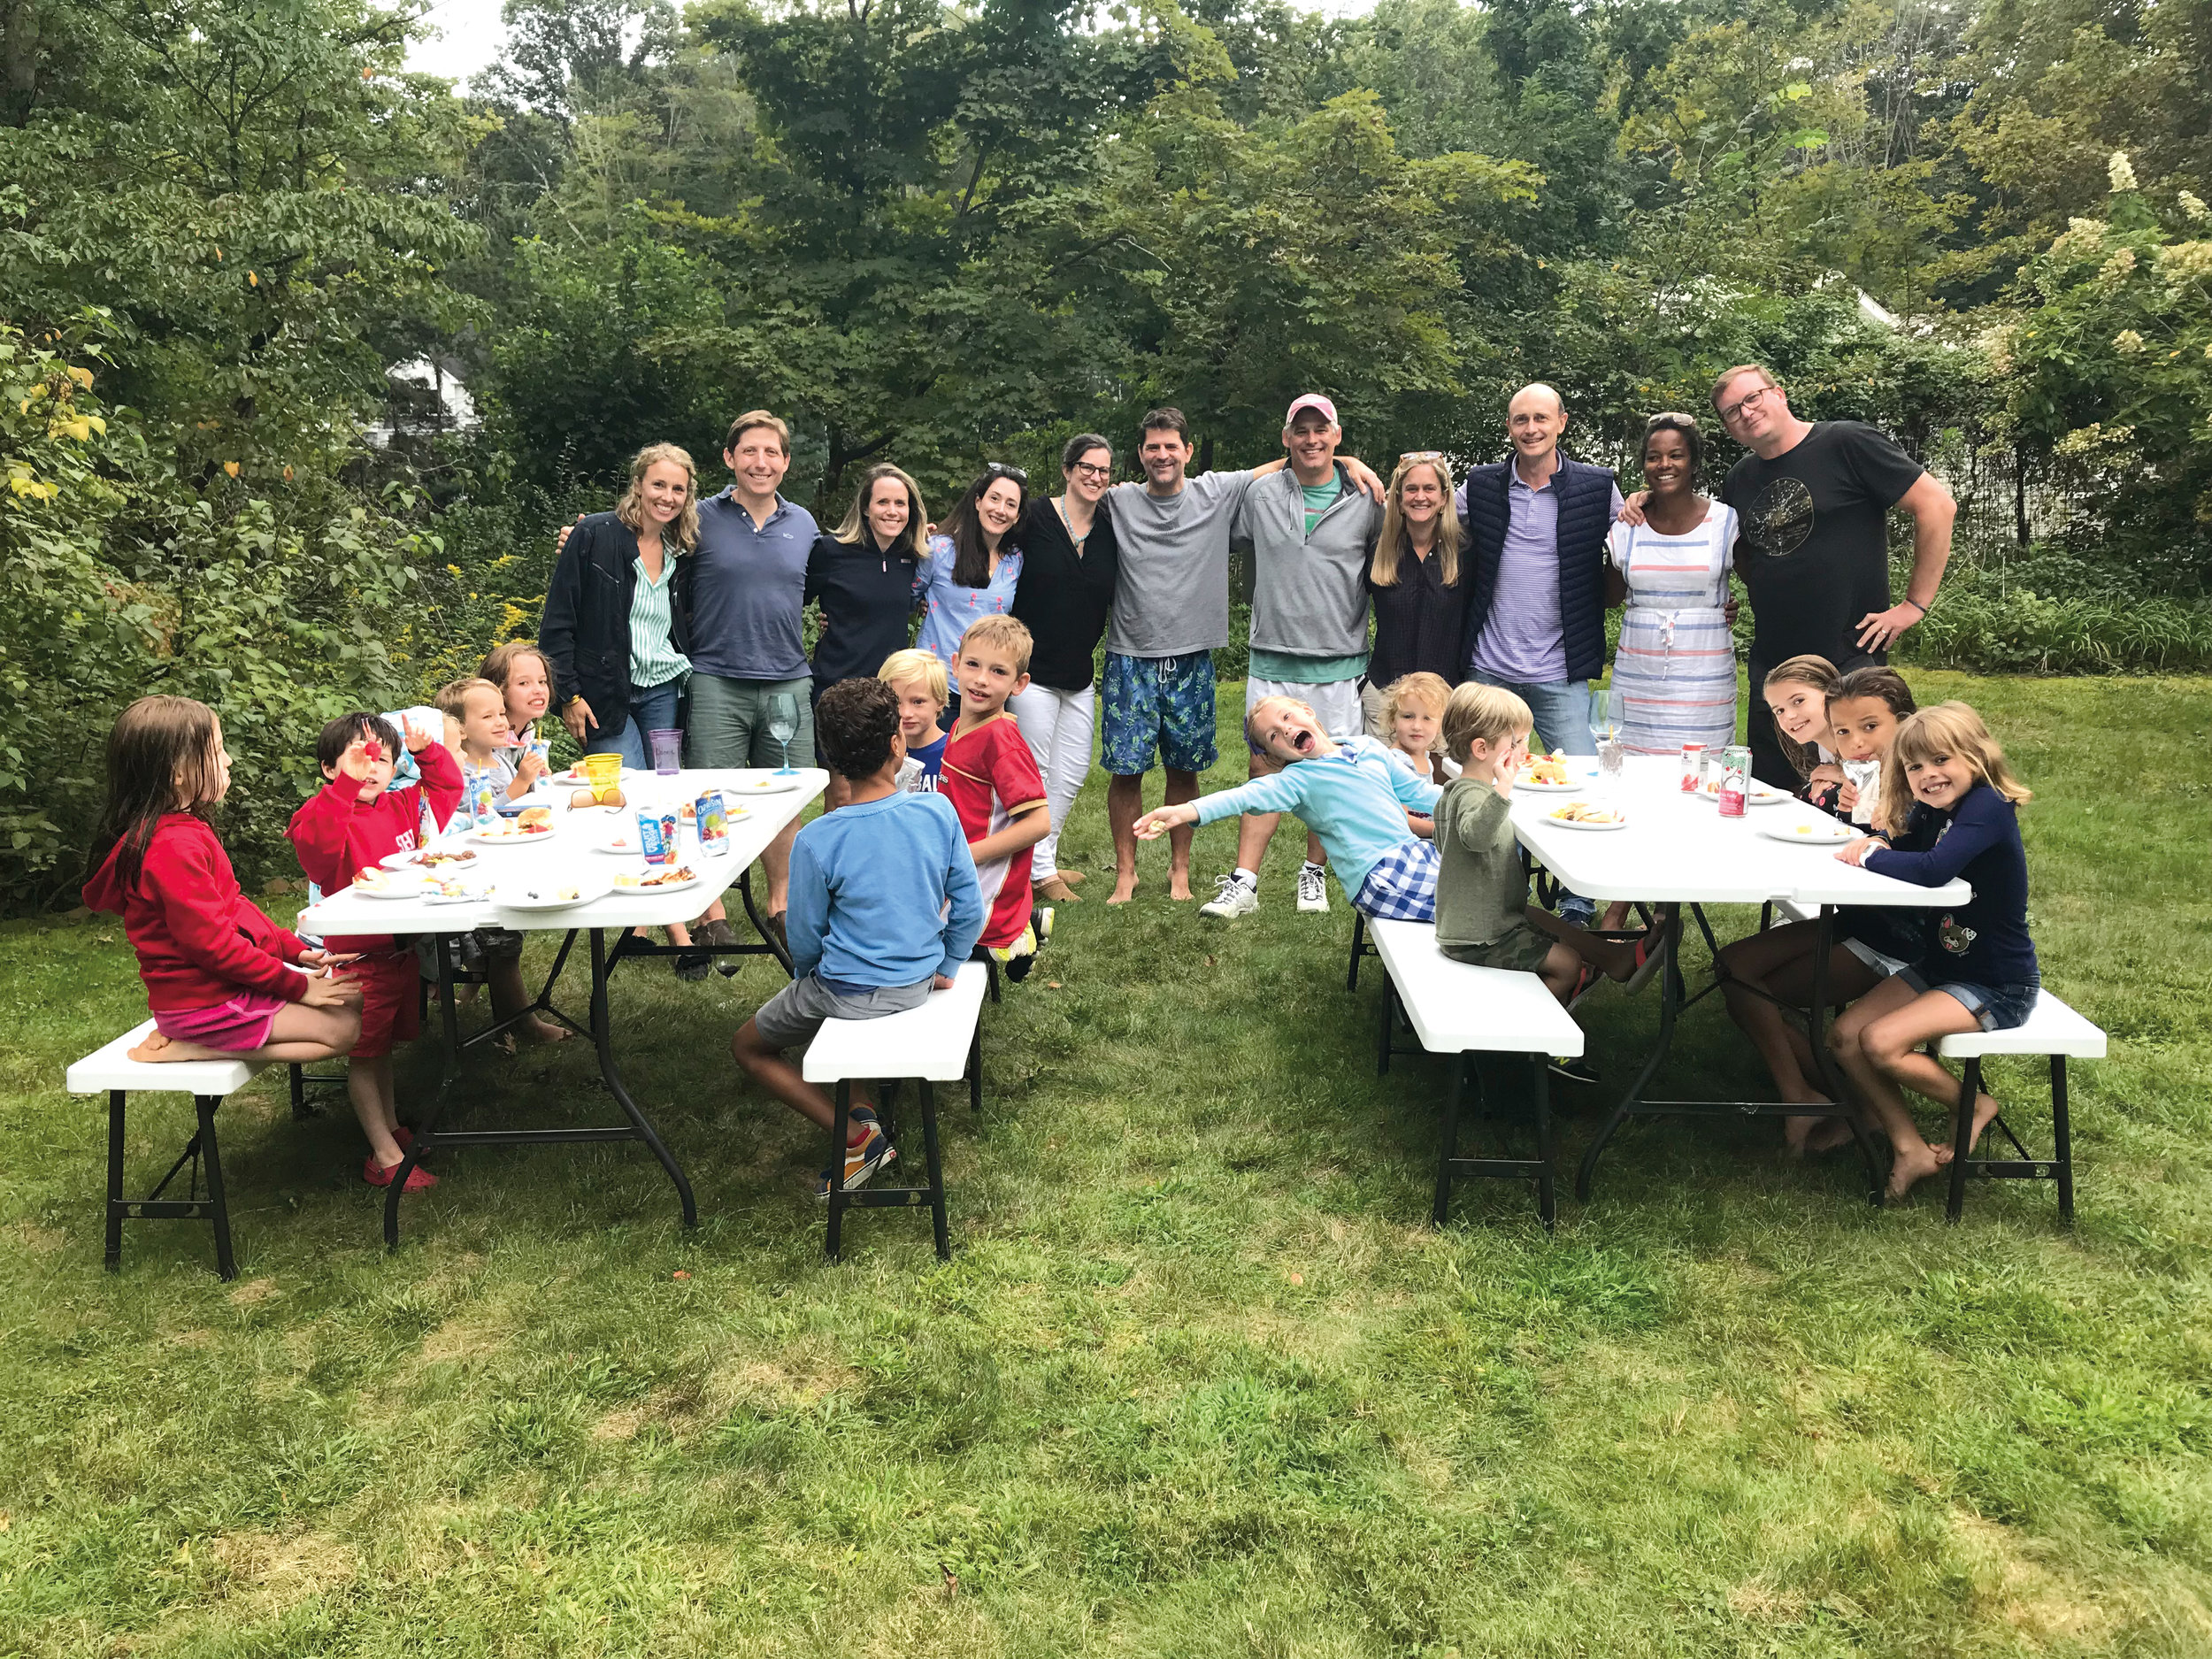 SPS was well represented at a barbeque in Westport, Conn., this fall: (l. to r.) back: Charlotte Martin Smith '93, Adam Ronzoni (husband of Charlotte Relyea '92), Connie Cocroft Brown '92, Charlotte Relyea '92, Sarah Rulon-Miller Dennis '92, John Dillon '92, Mark Smith '92, Abigail Manny Newport '92, Benito Moyer '92, Cortney Johnson Stanley '92, and Gareth Stanley (Cortney's husband); front (l. to r.) Claire Ronzoni, Graham Ronzoni, Louisa Smith, Arthur Smith, Eleanor Smith, Archer Stanley, Wes Moyer, Oliver Smith, Martha Smith, Etta Moyer, Tully Newport, Cecelia Dillon, Ellis Stanley, and Lydia Dillon.